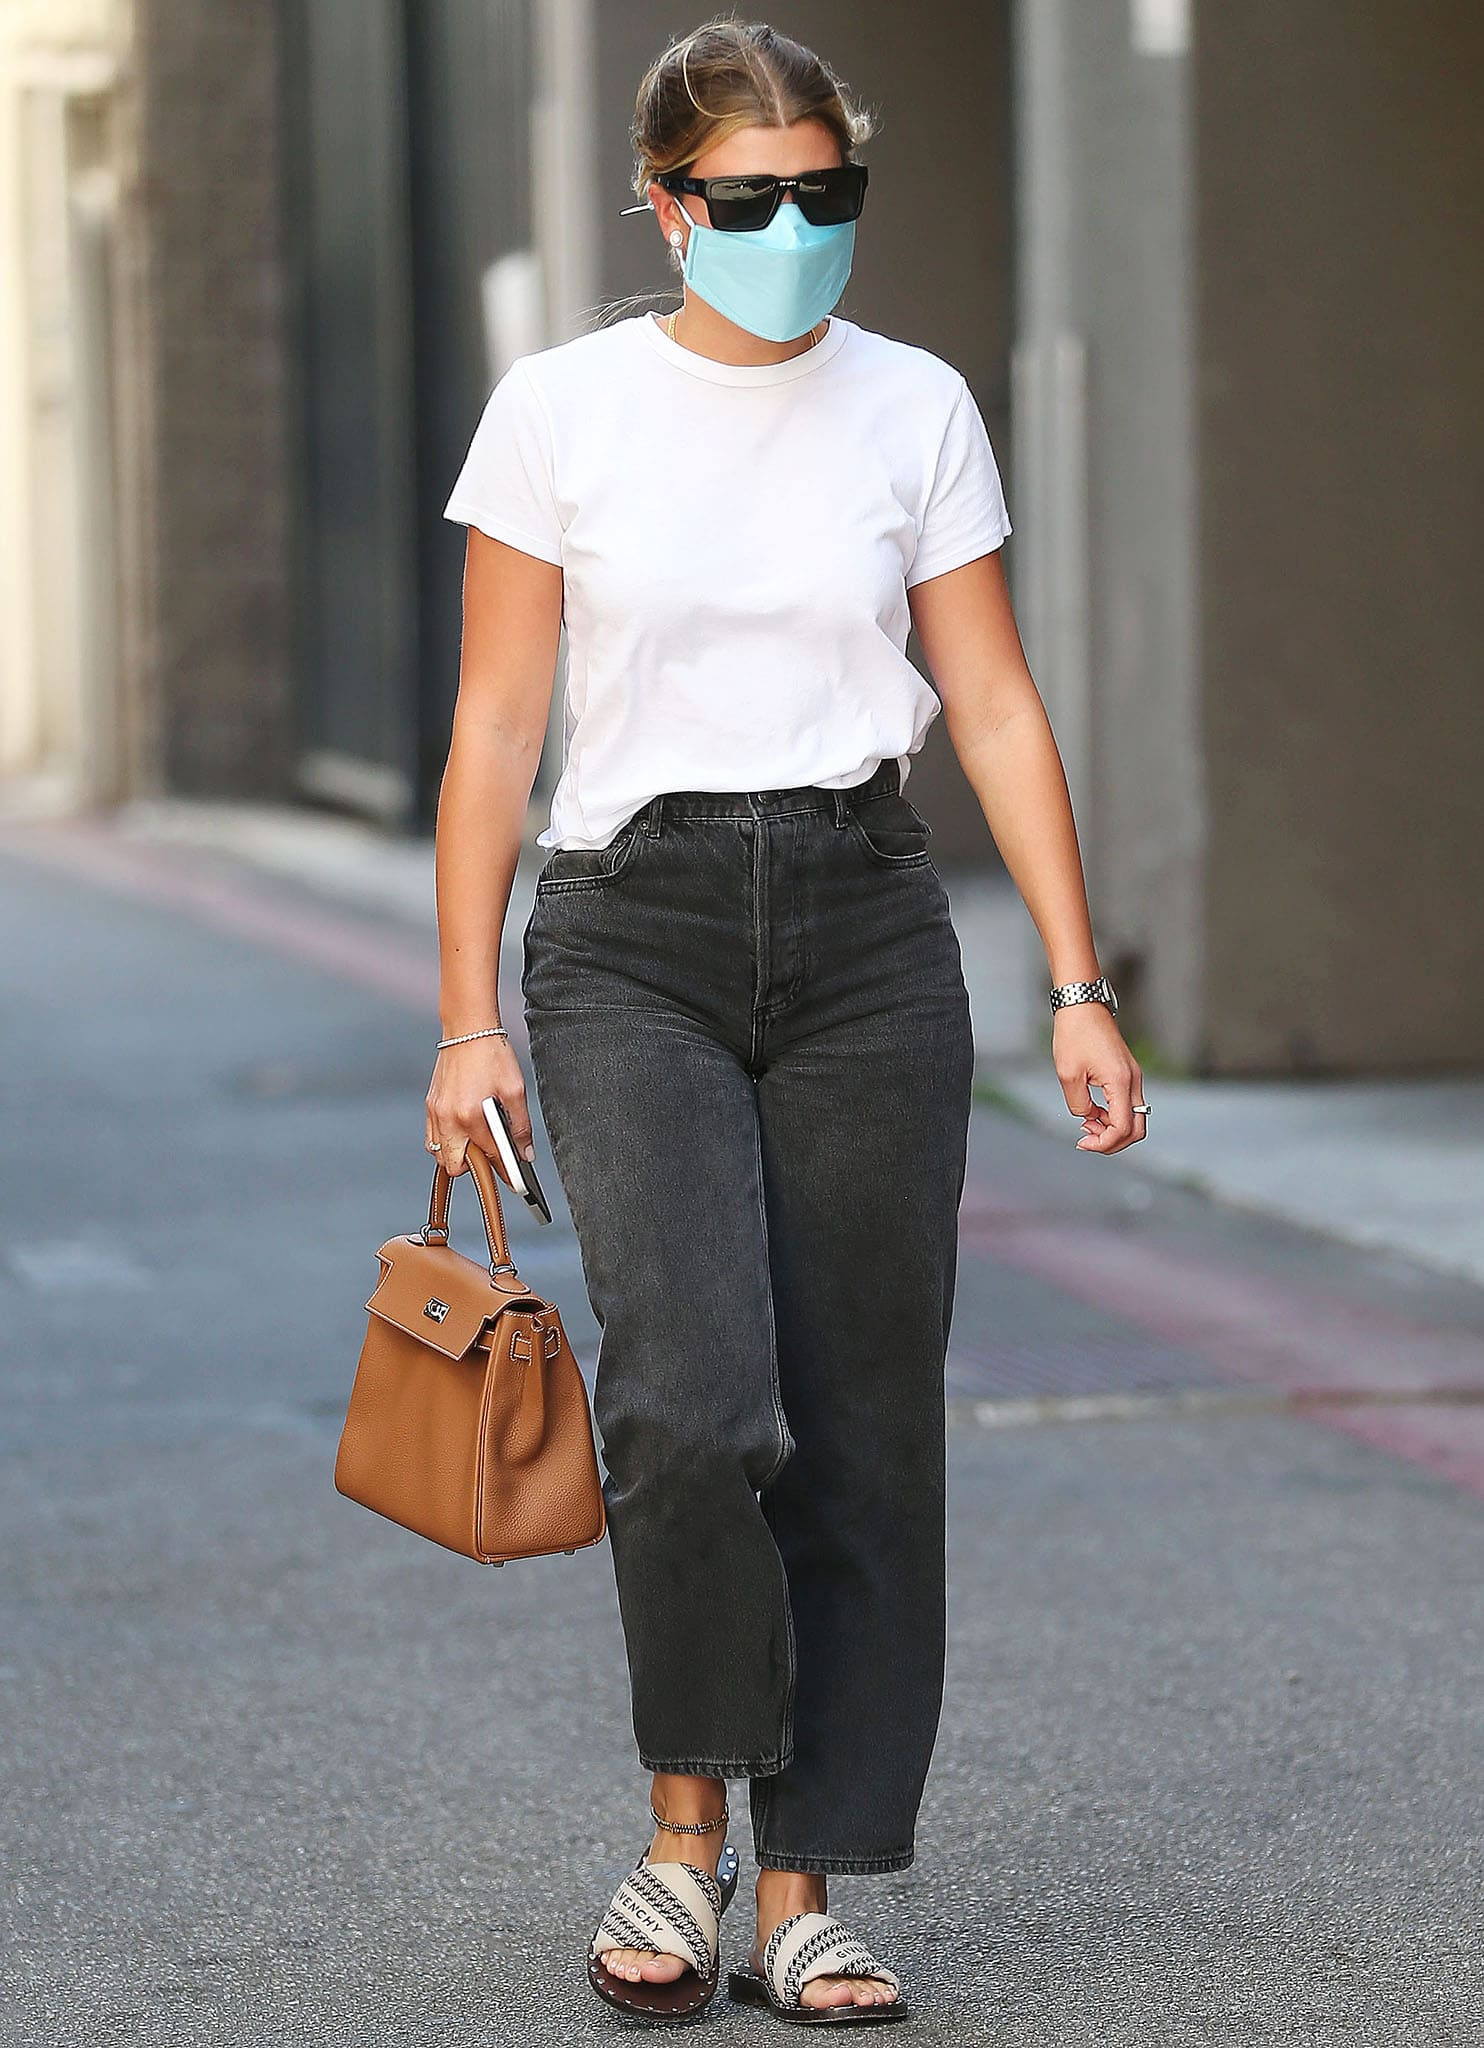 Sofia Richie wears a '90s minimalist outfit while out and about in Los Angeles on August 26, 2021